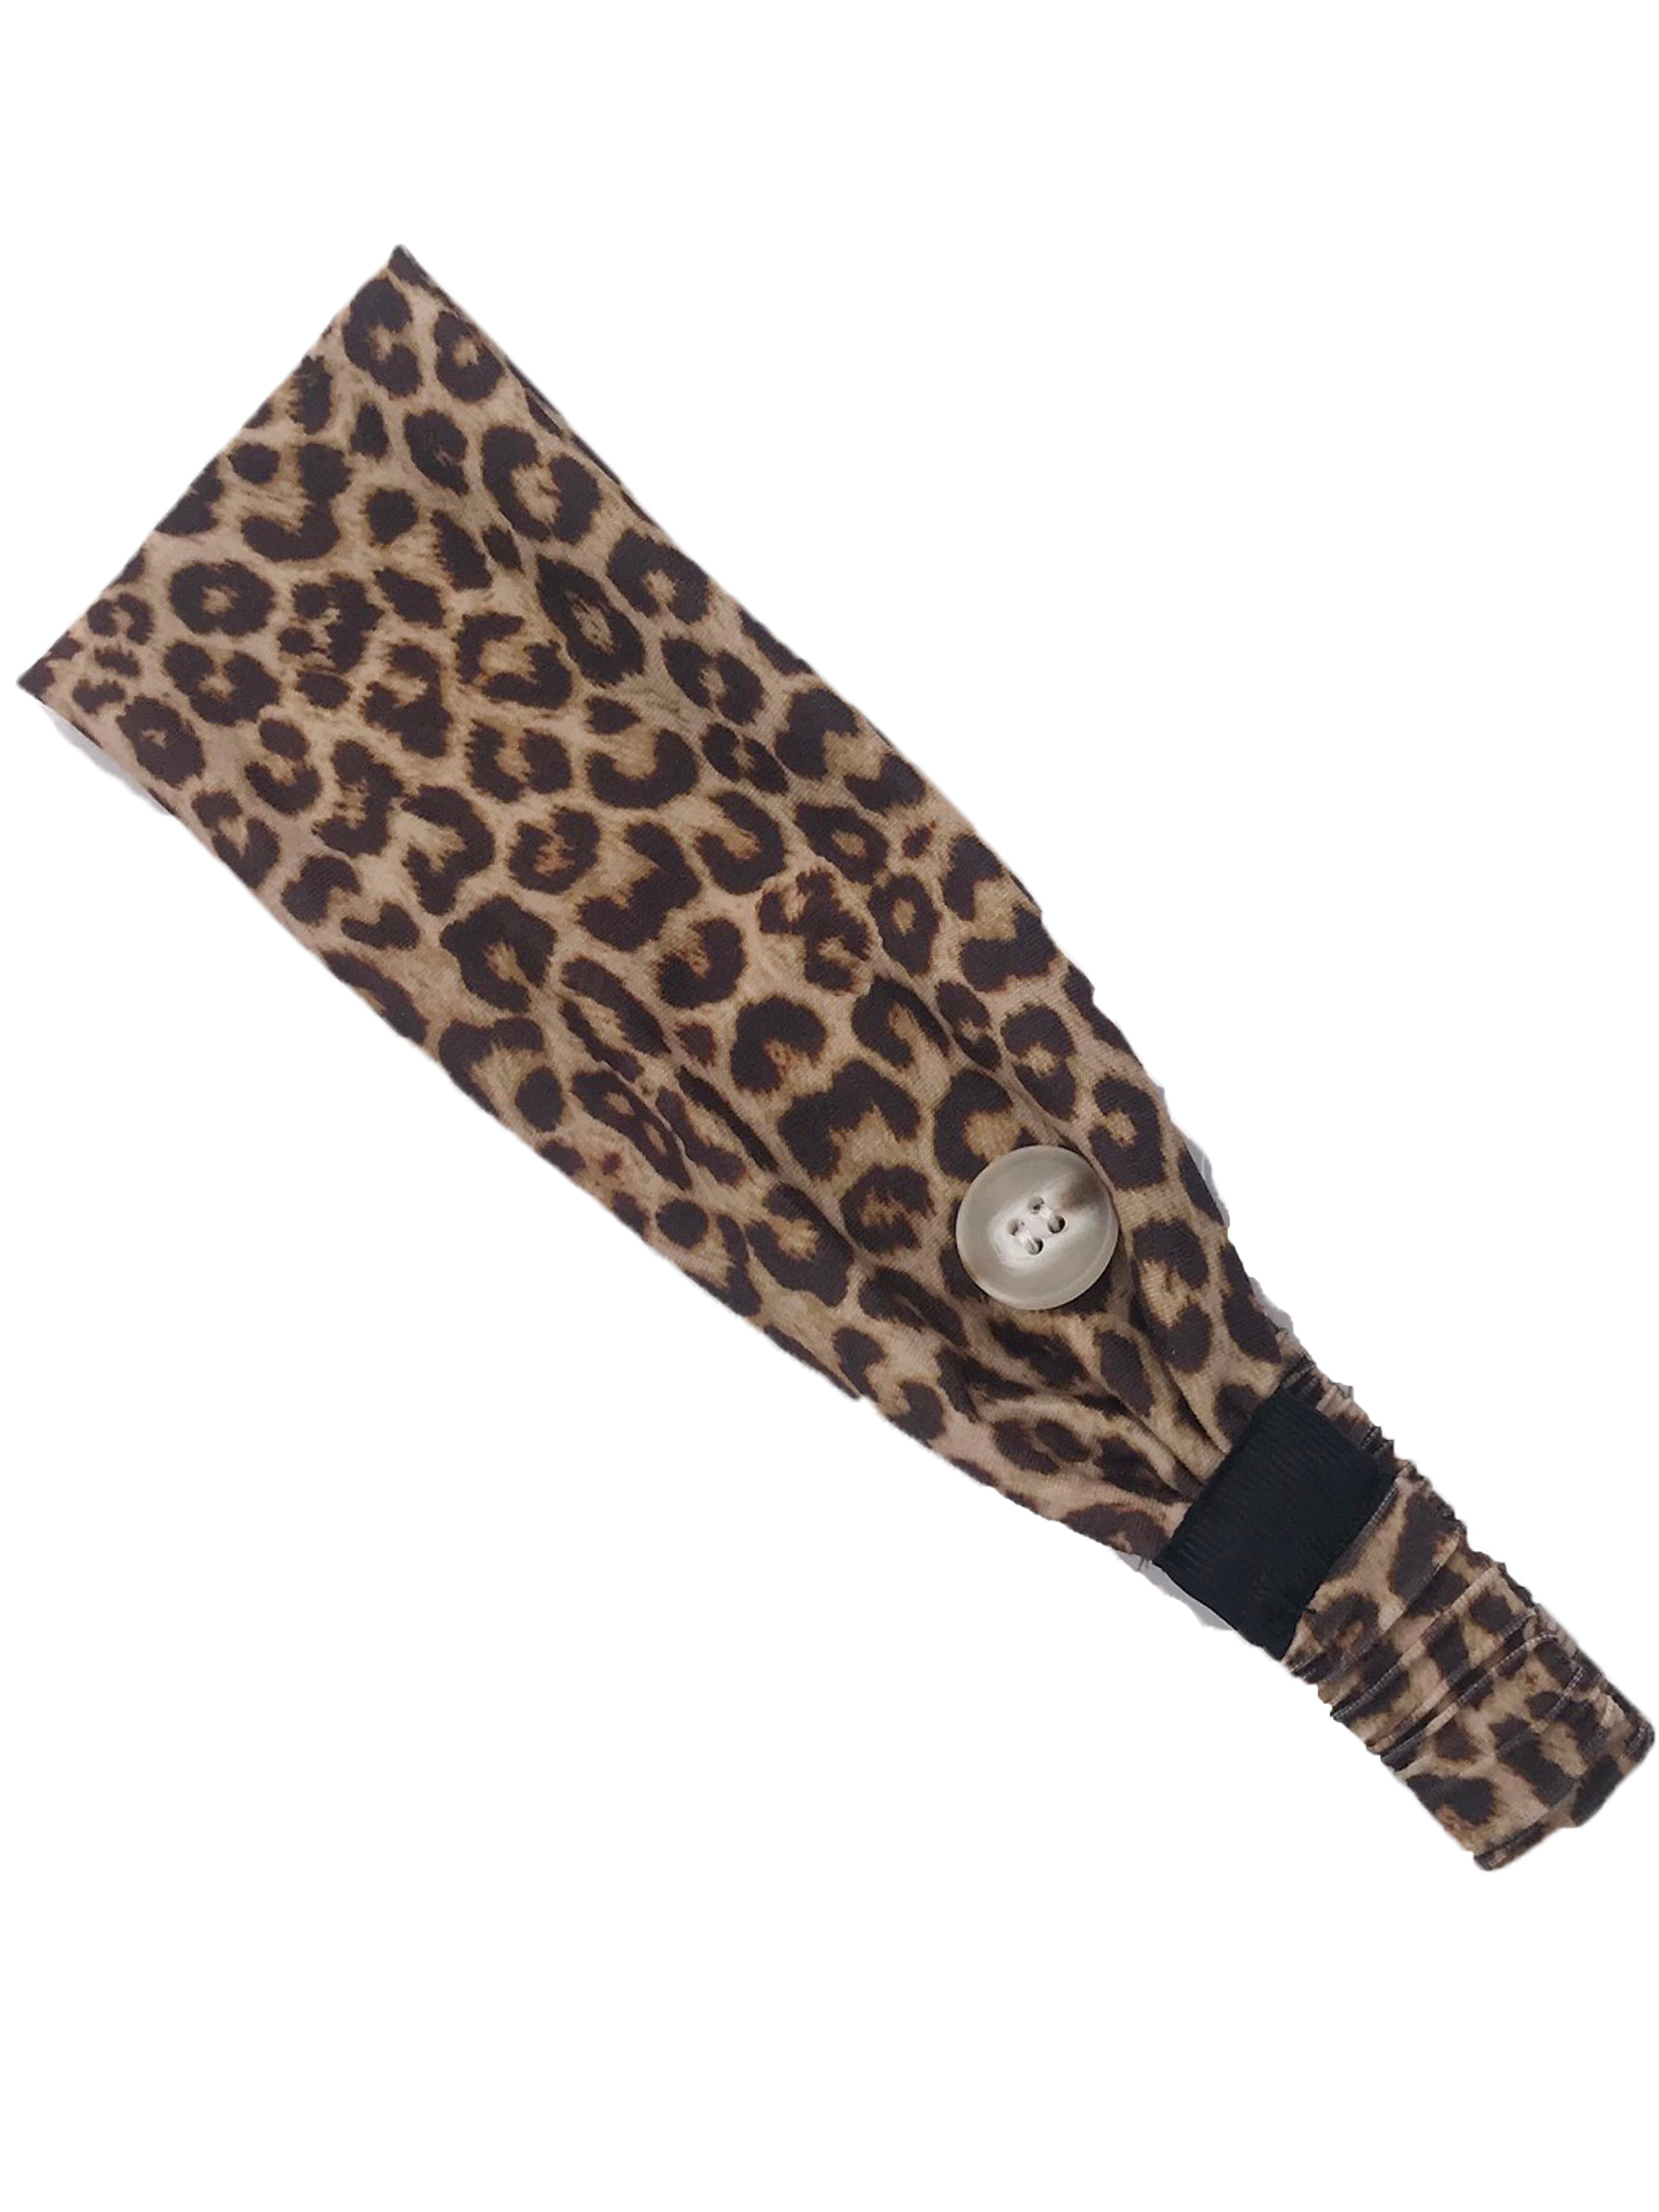 HB-2020 Adult Headband Leopard Brown